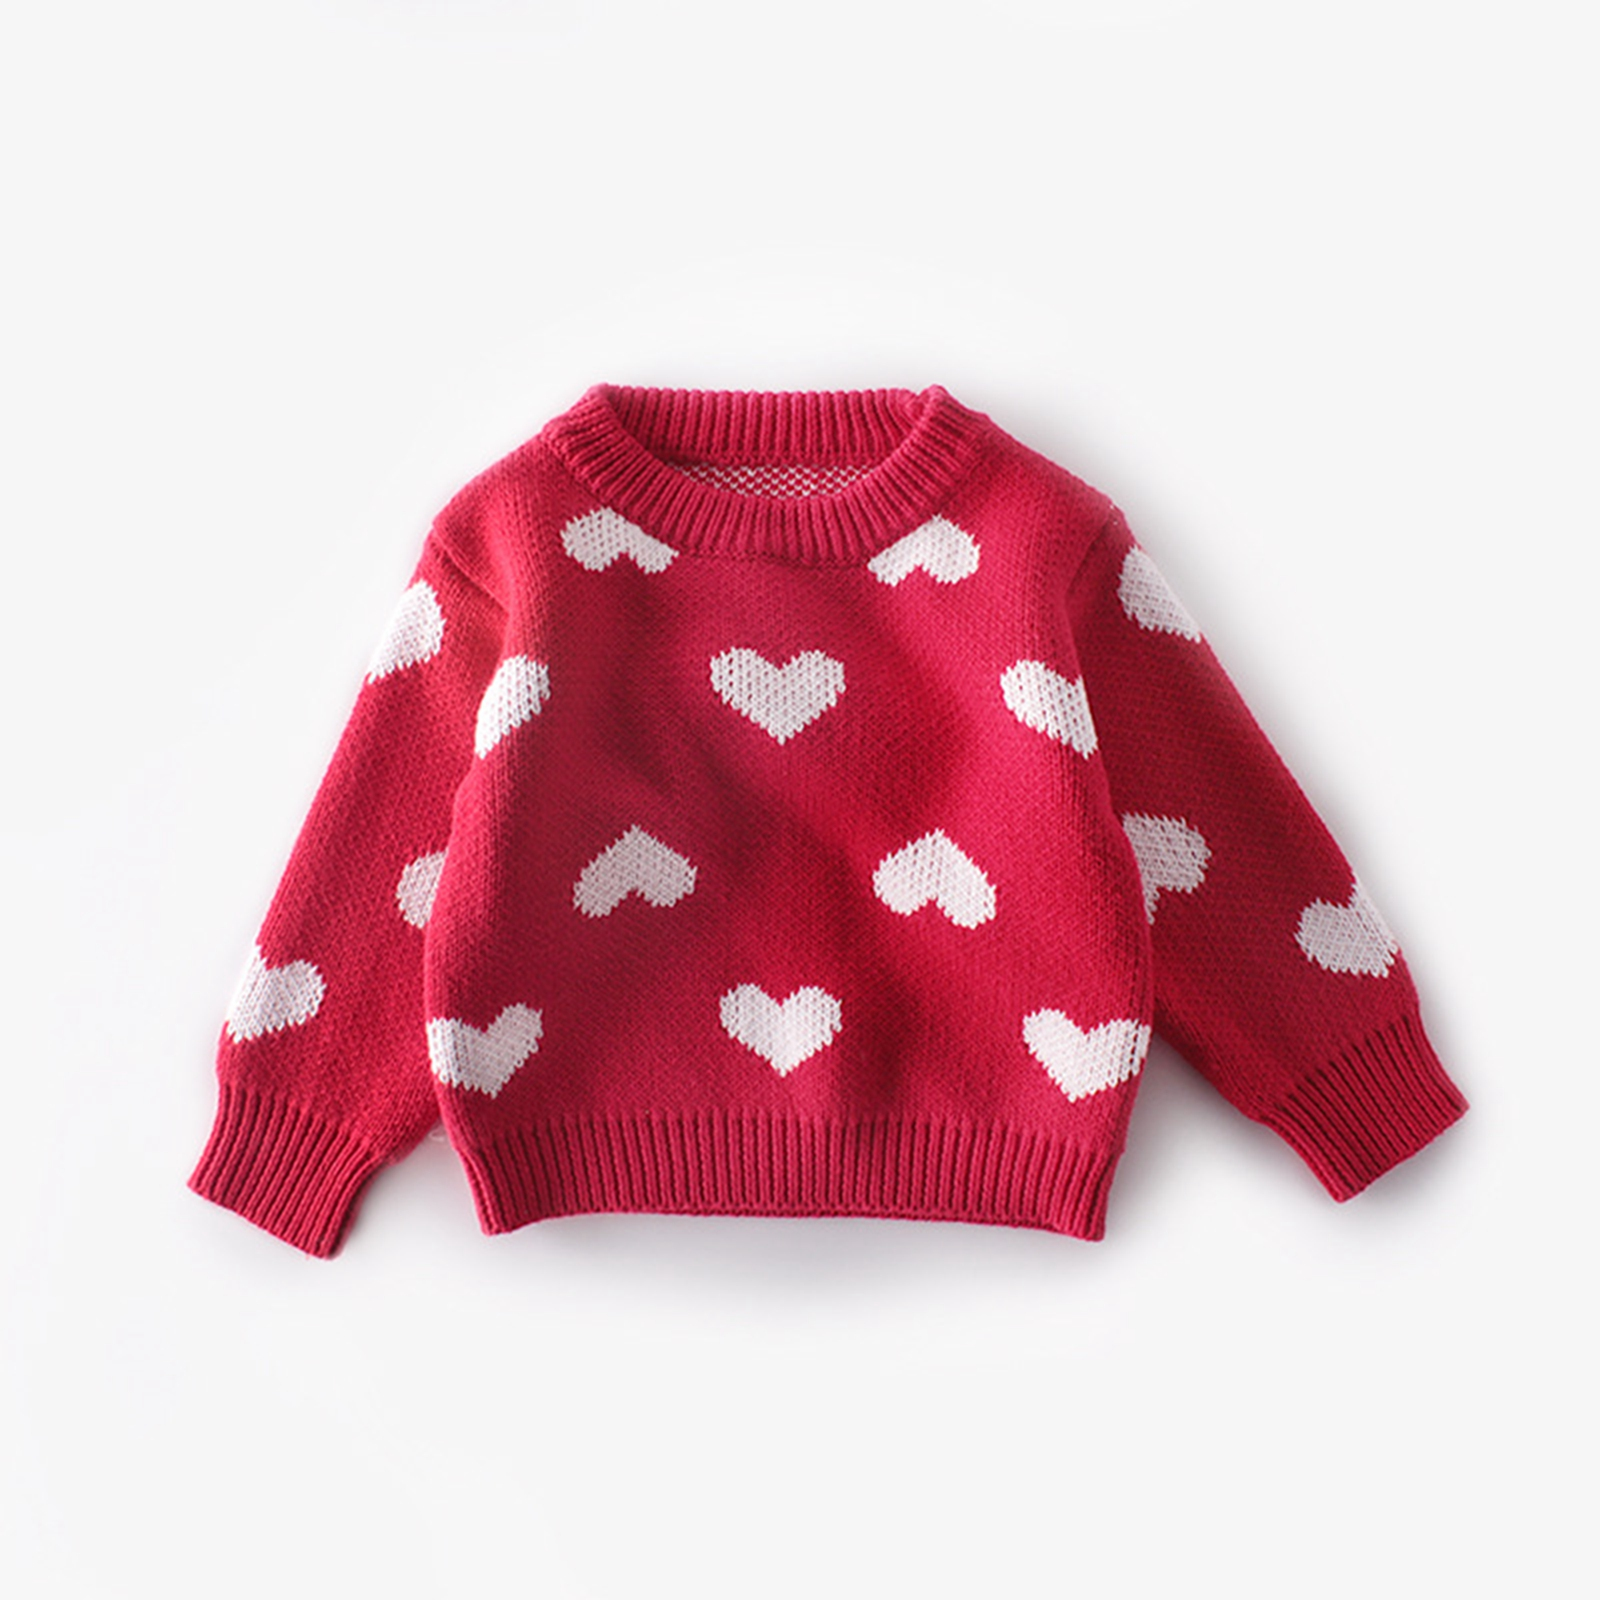 Baby Girl Hearts Sweaters Valentine Korean Long-sleeved Knitted Sweater Autumn Winter Fashion Heart Pattern Pullover Knitwear